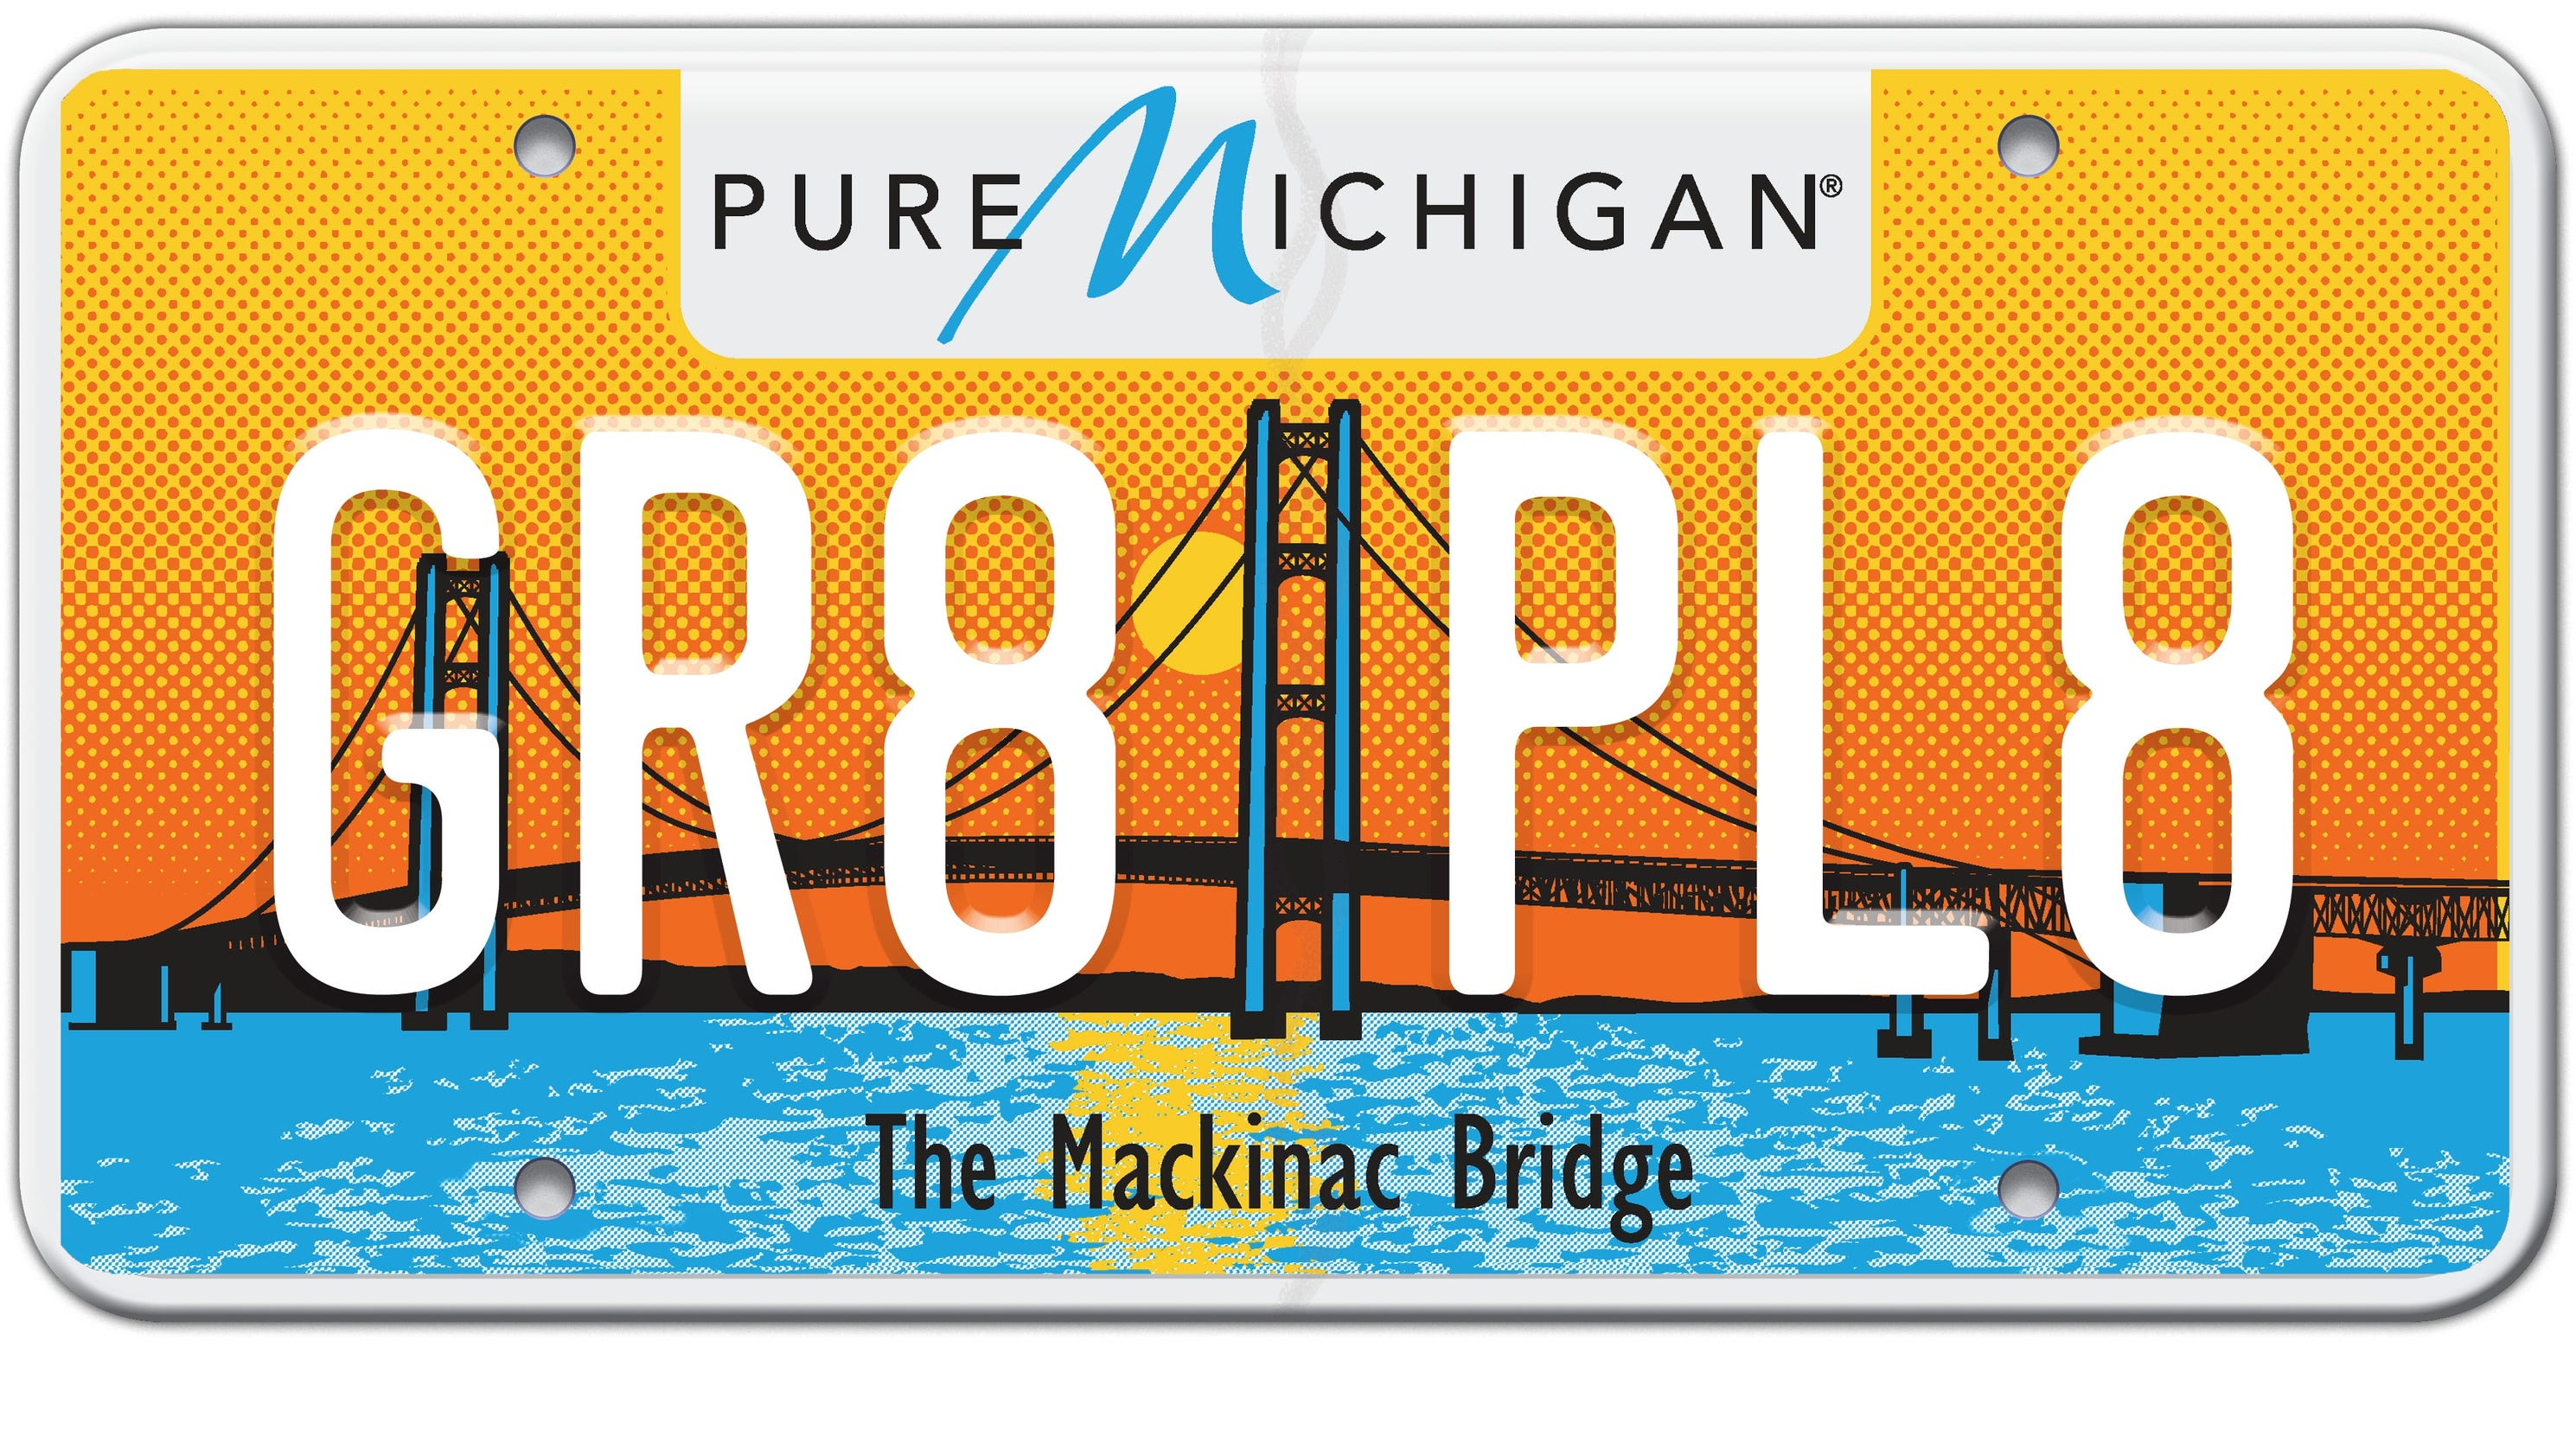 Michigan redesigns license plate after complaints